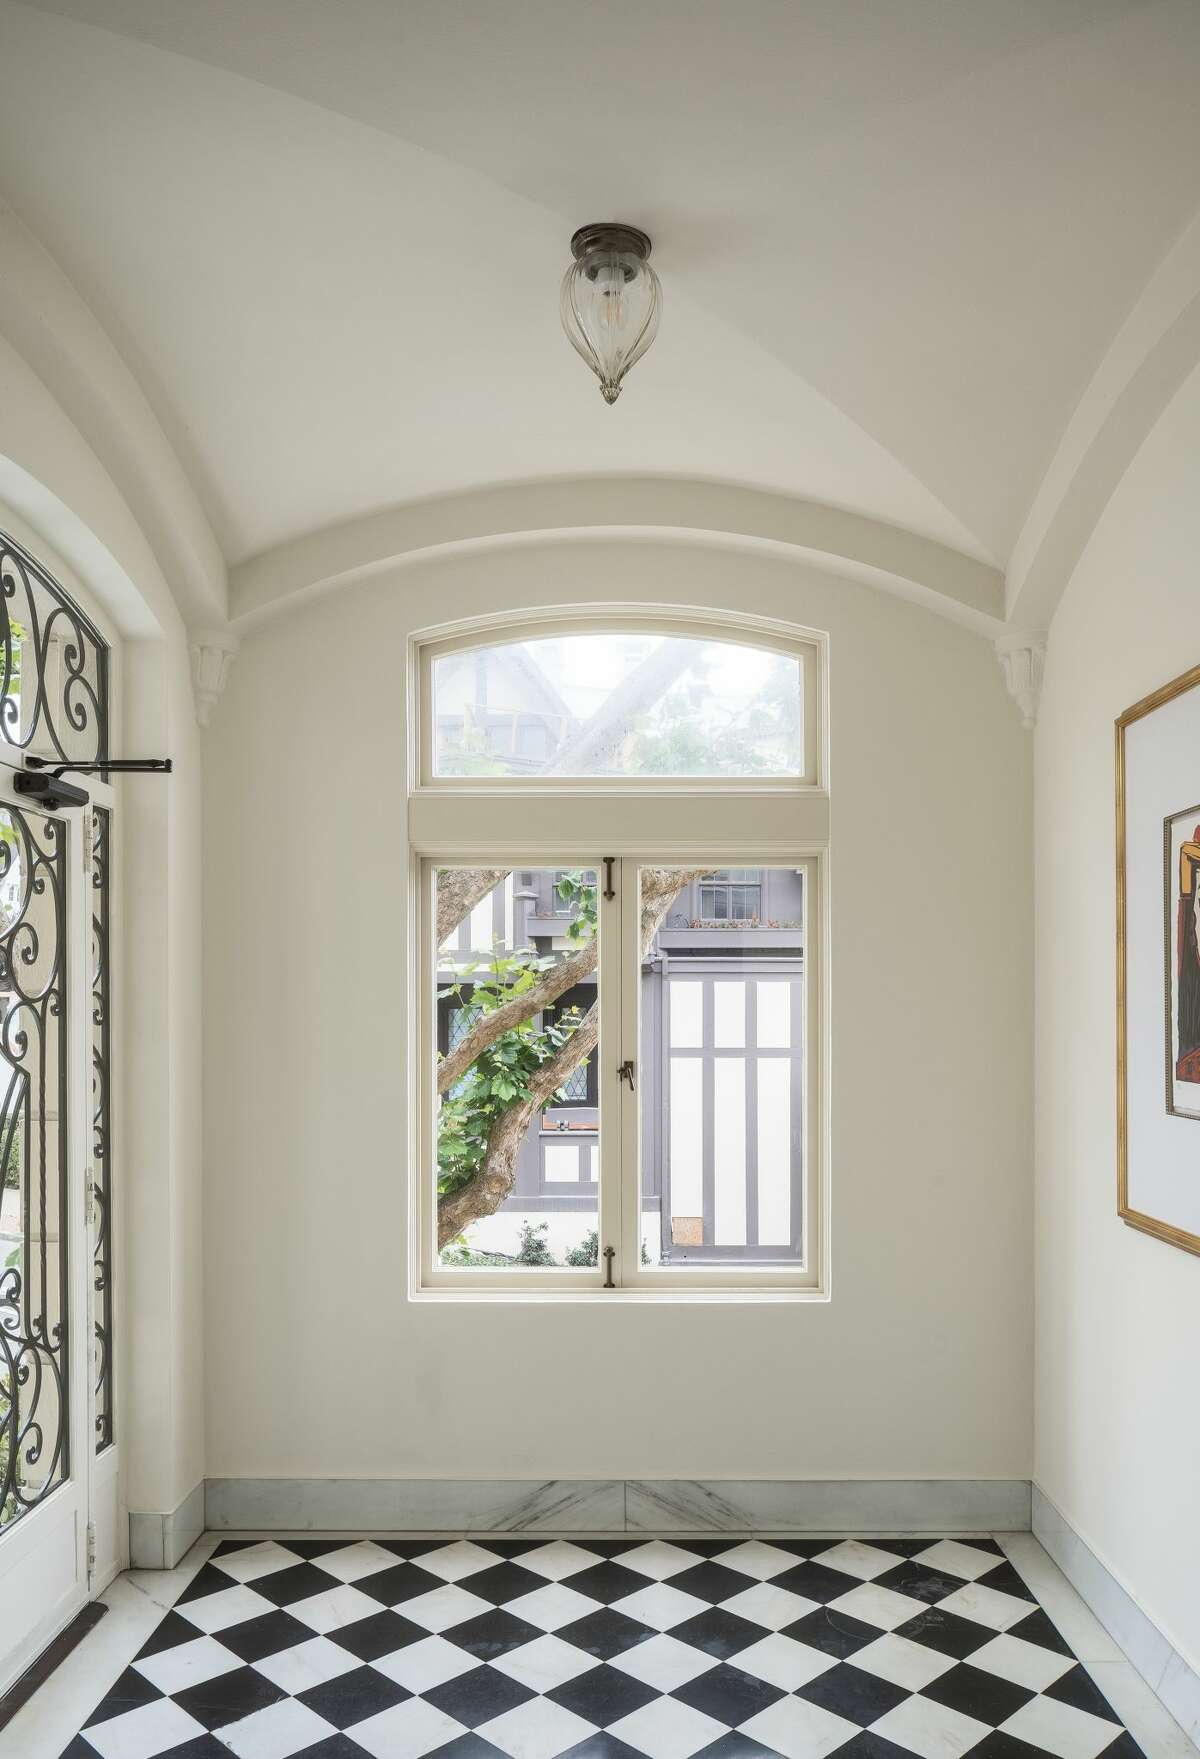 The entry room highlights the iron and glass front door and tiled floor.